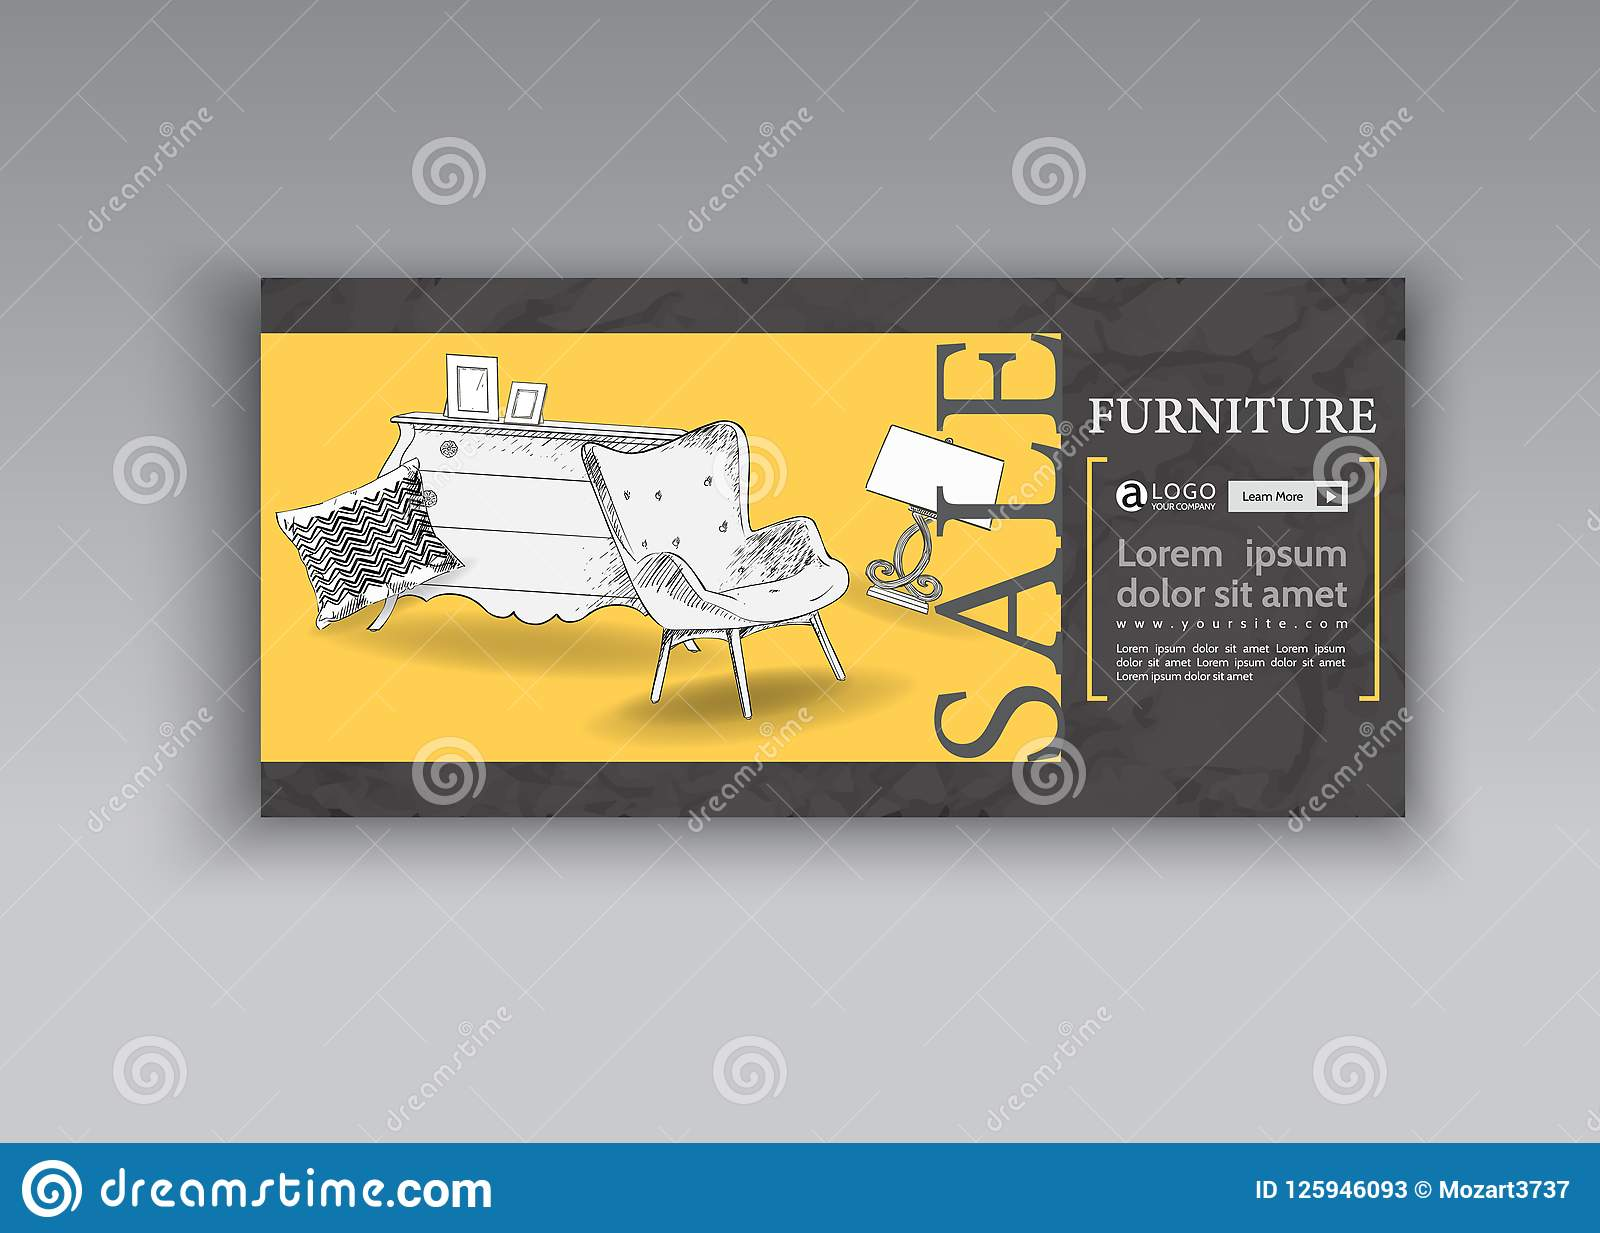 furniture sale ads. Download Banner Of Hand Drawn Furniture Store, Apartment, Promotion, Sale,  Ads Stock Furniture Sale Ads